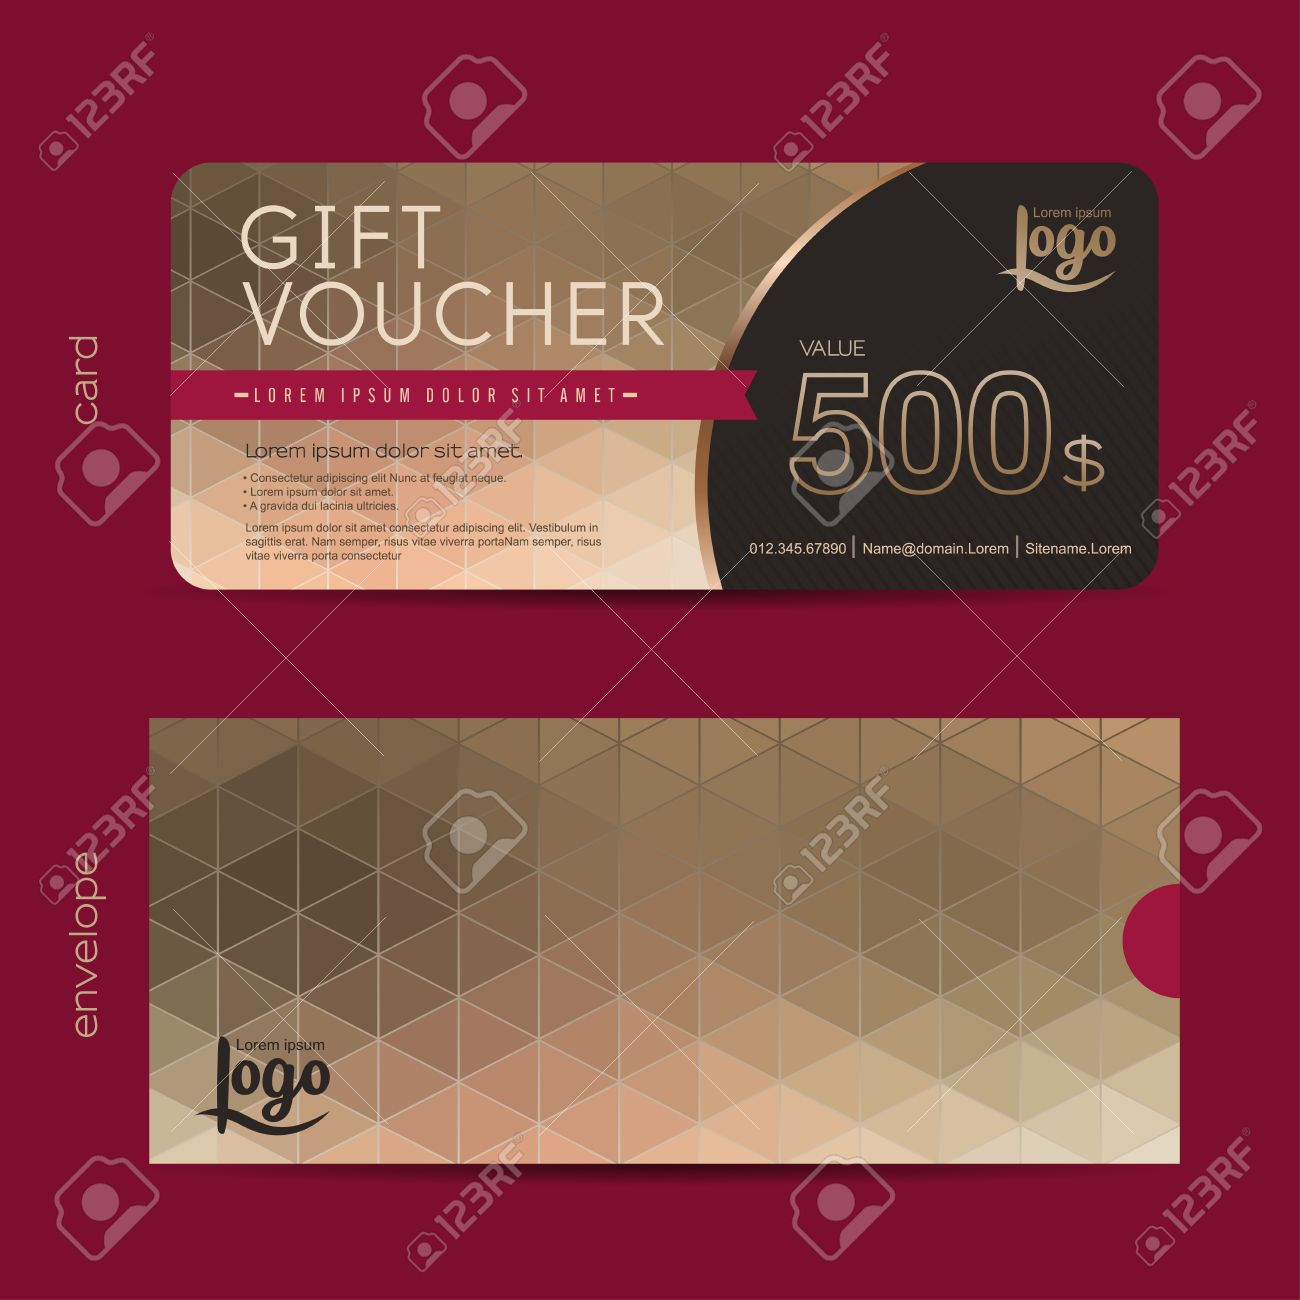 Gift Voucher Template With Premium Pattern And Envelope Design